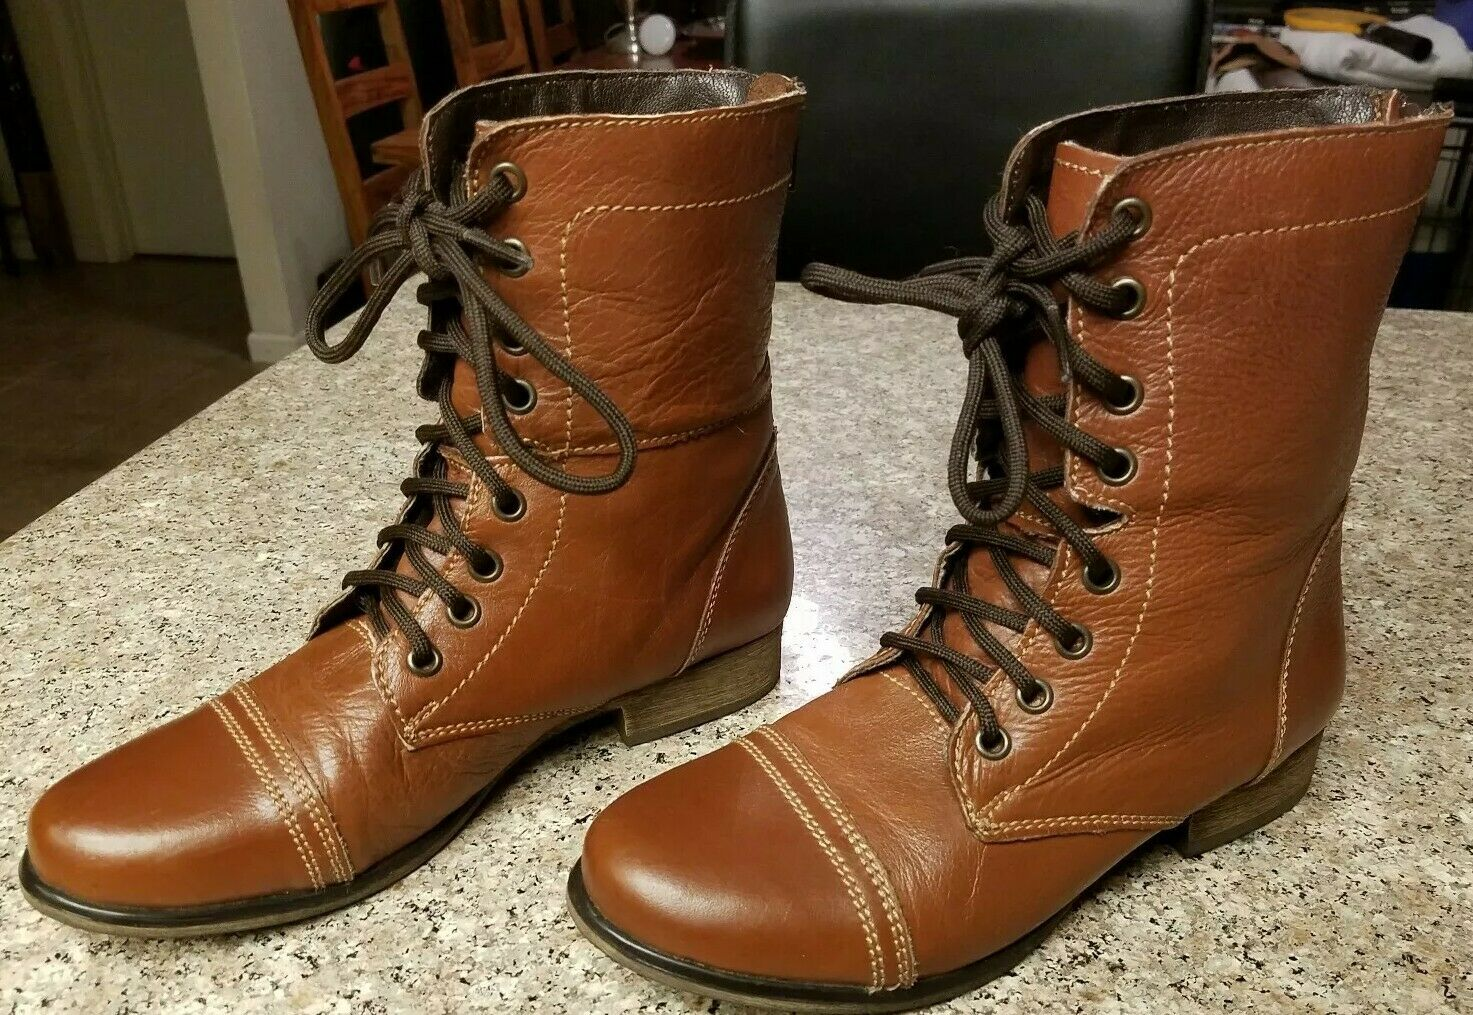 Steve Madden Women's Brown Leather P. Kombat Boots Size 7.5 M Lace Zip Up